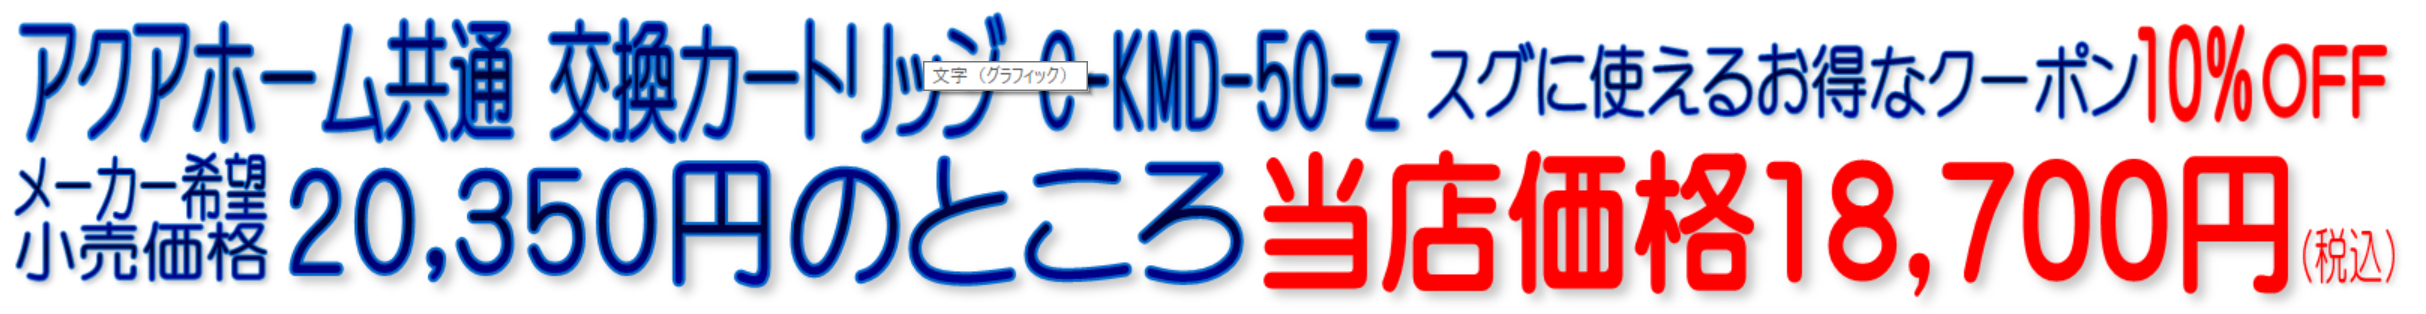 KMD-50ZS C-KMD-50-Z アクアホーム